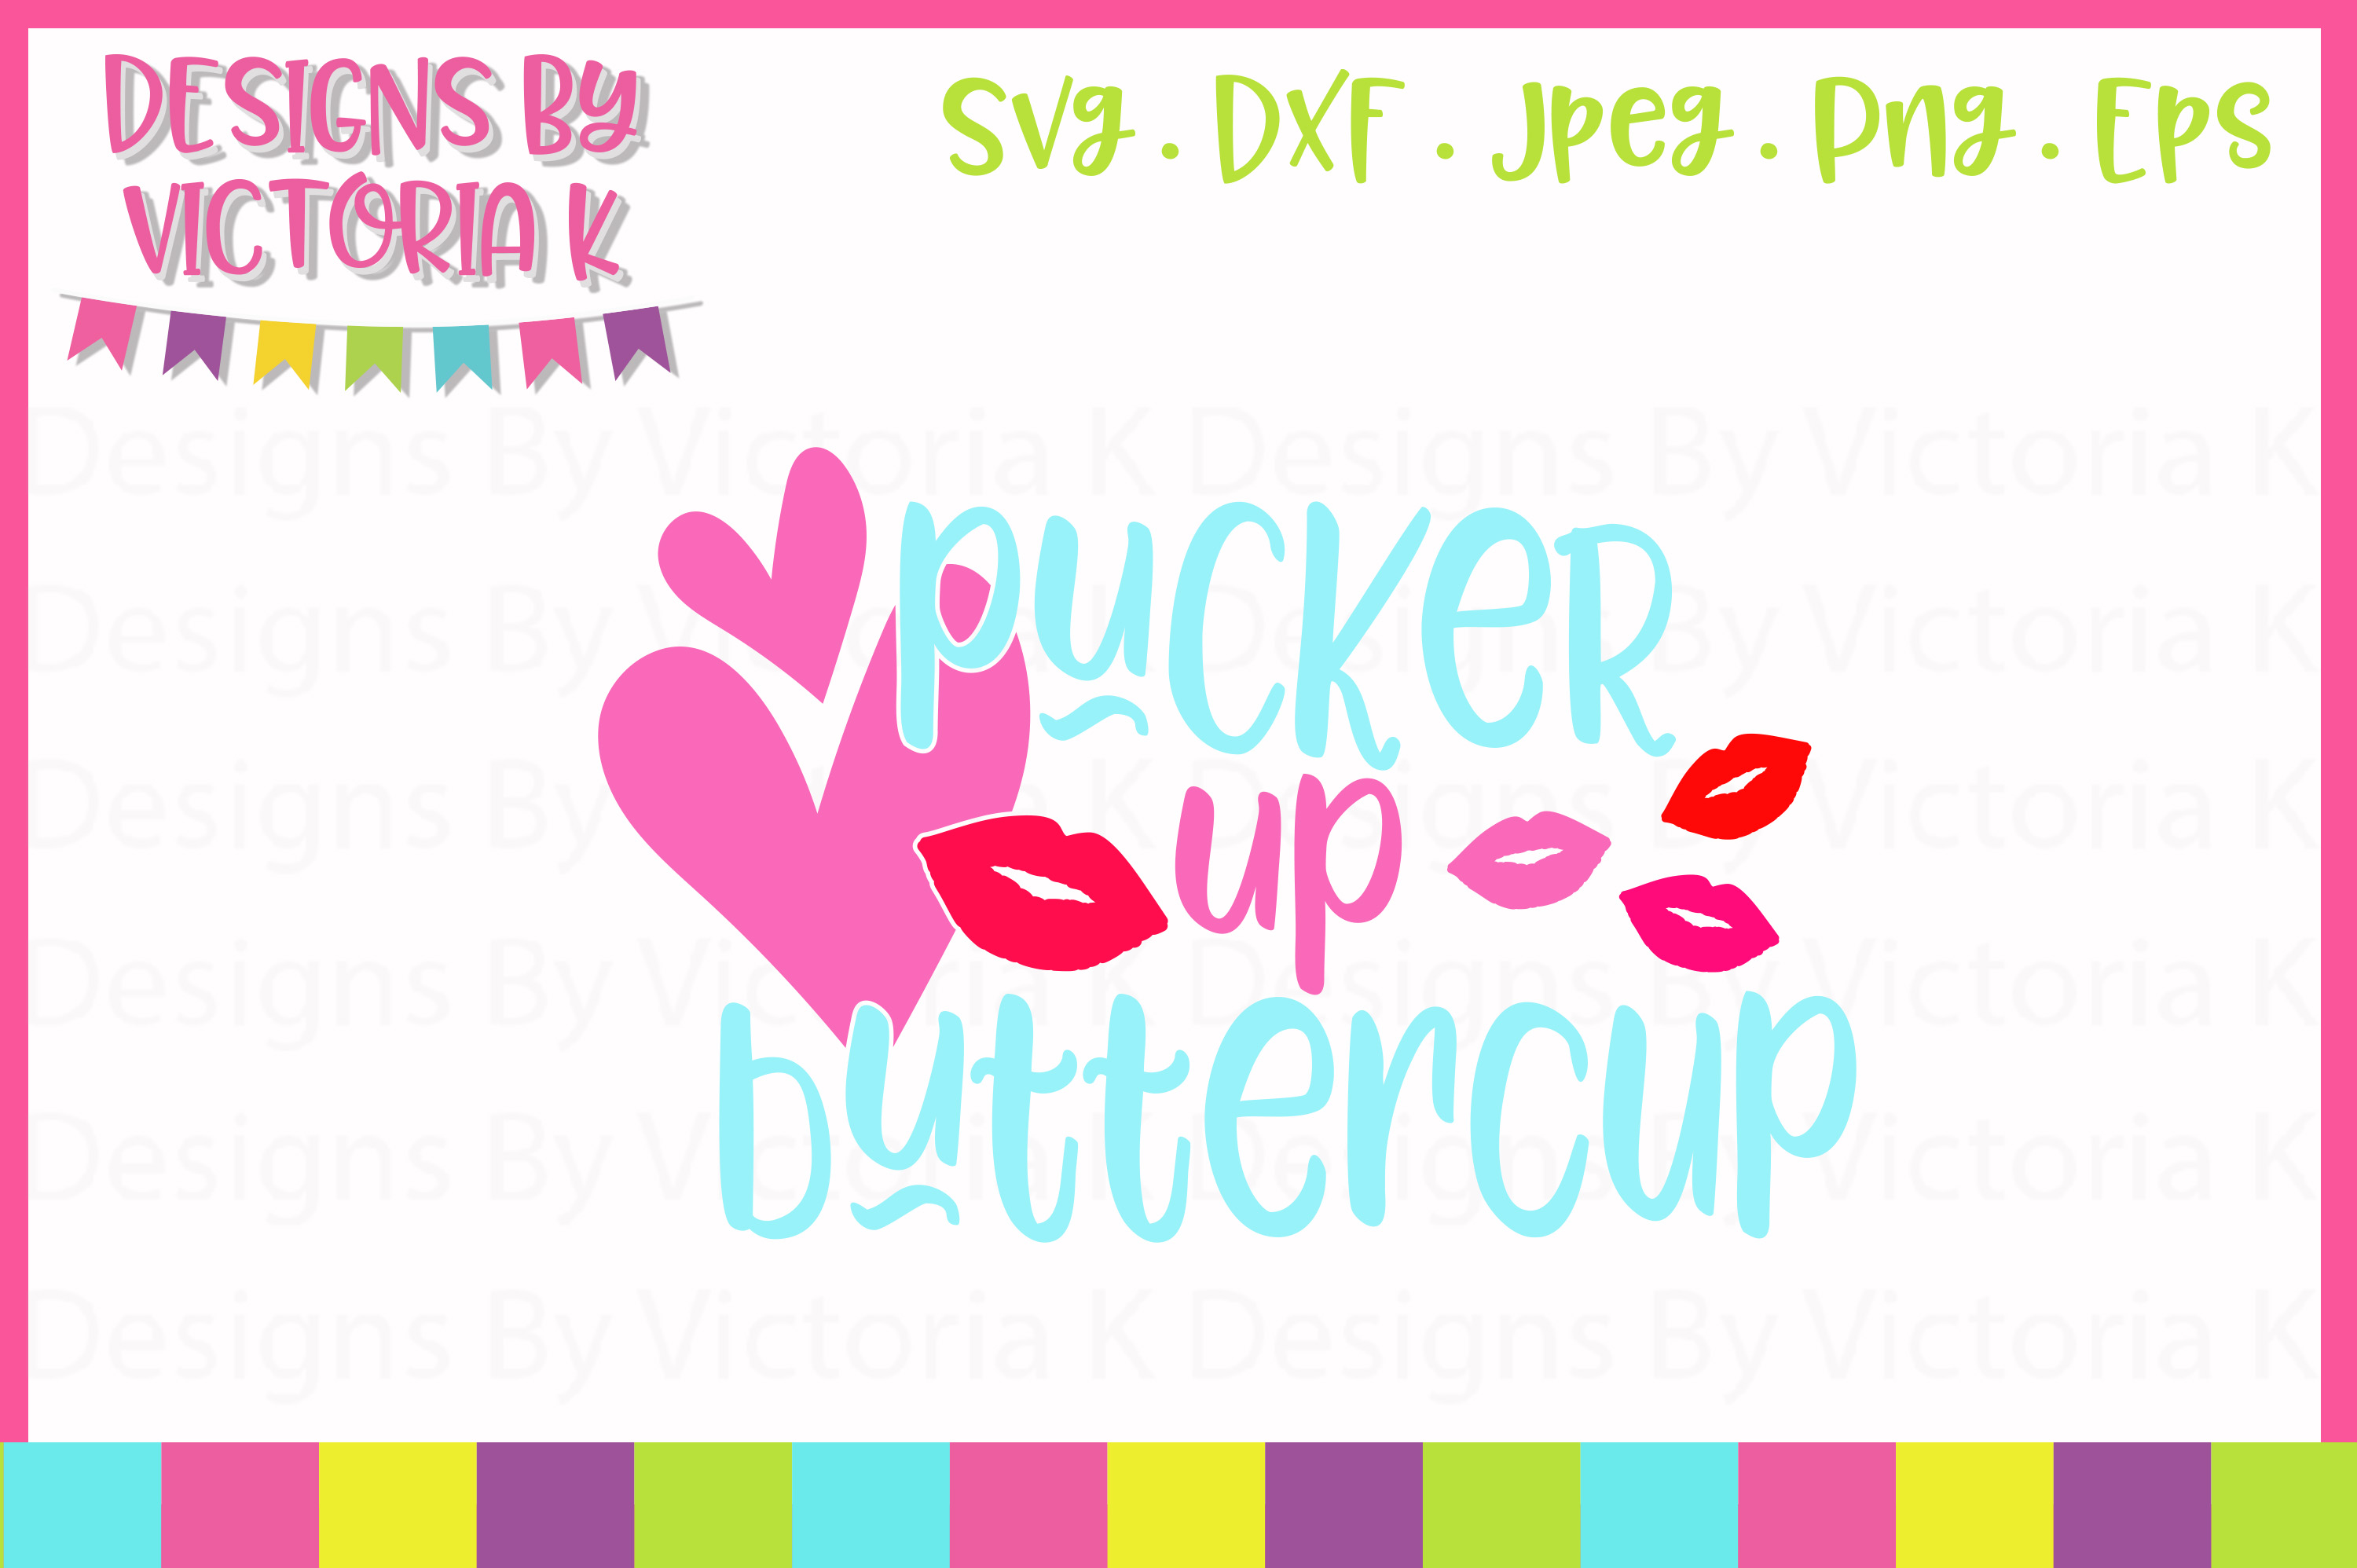 Pucker up Buttercup Valentine's Day SVG Cut File example image 1